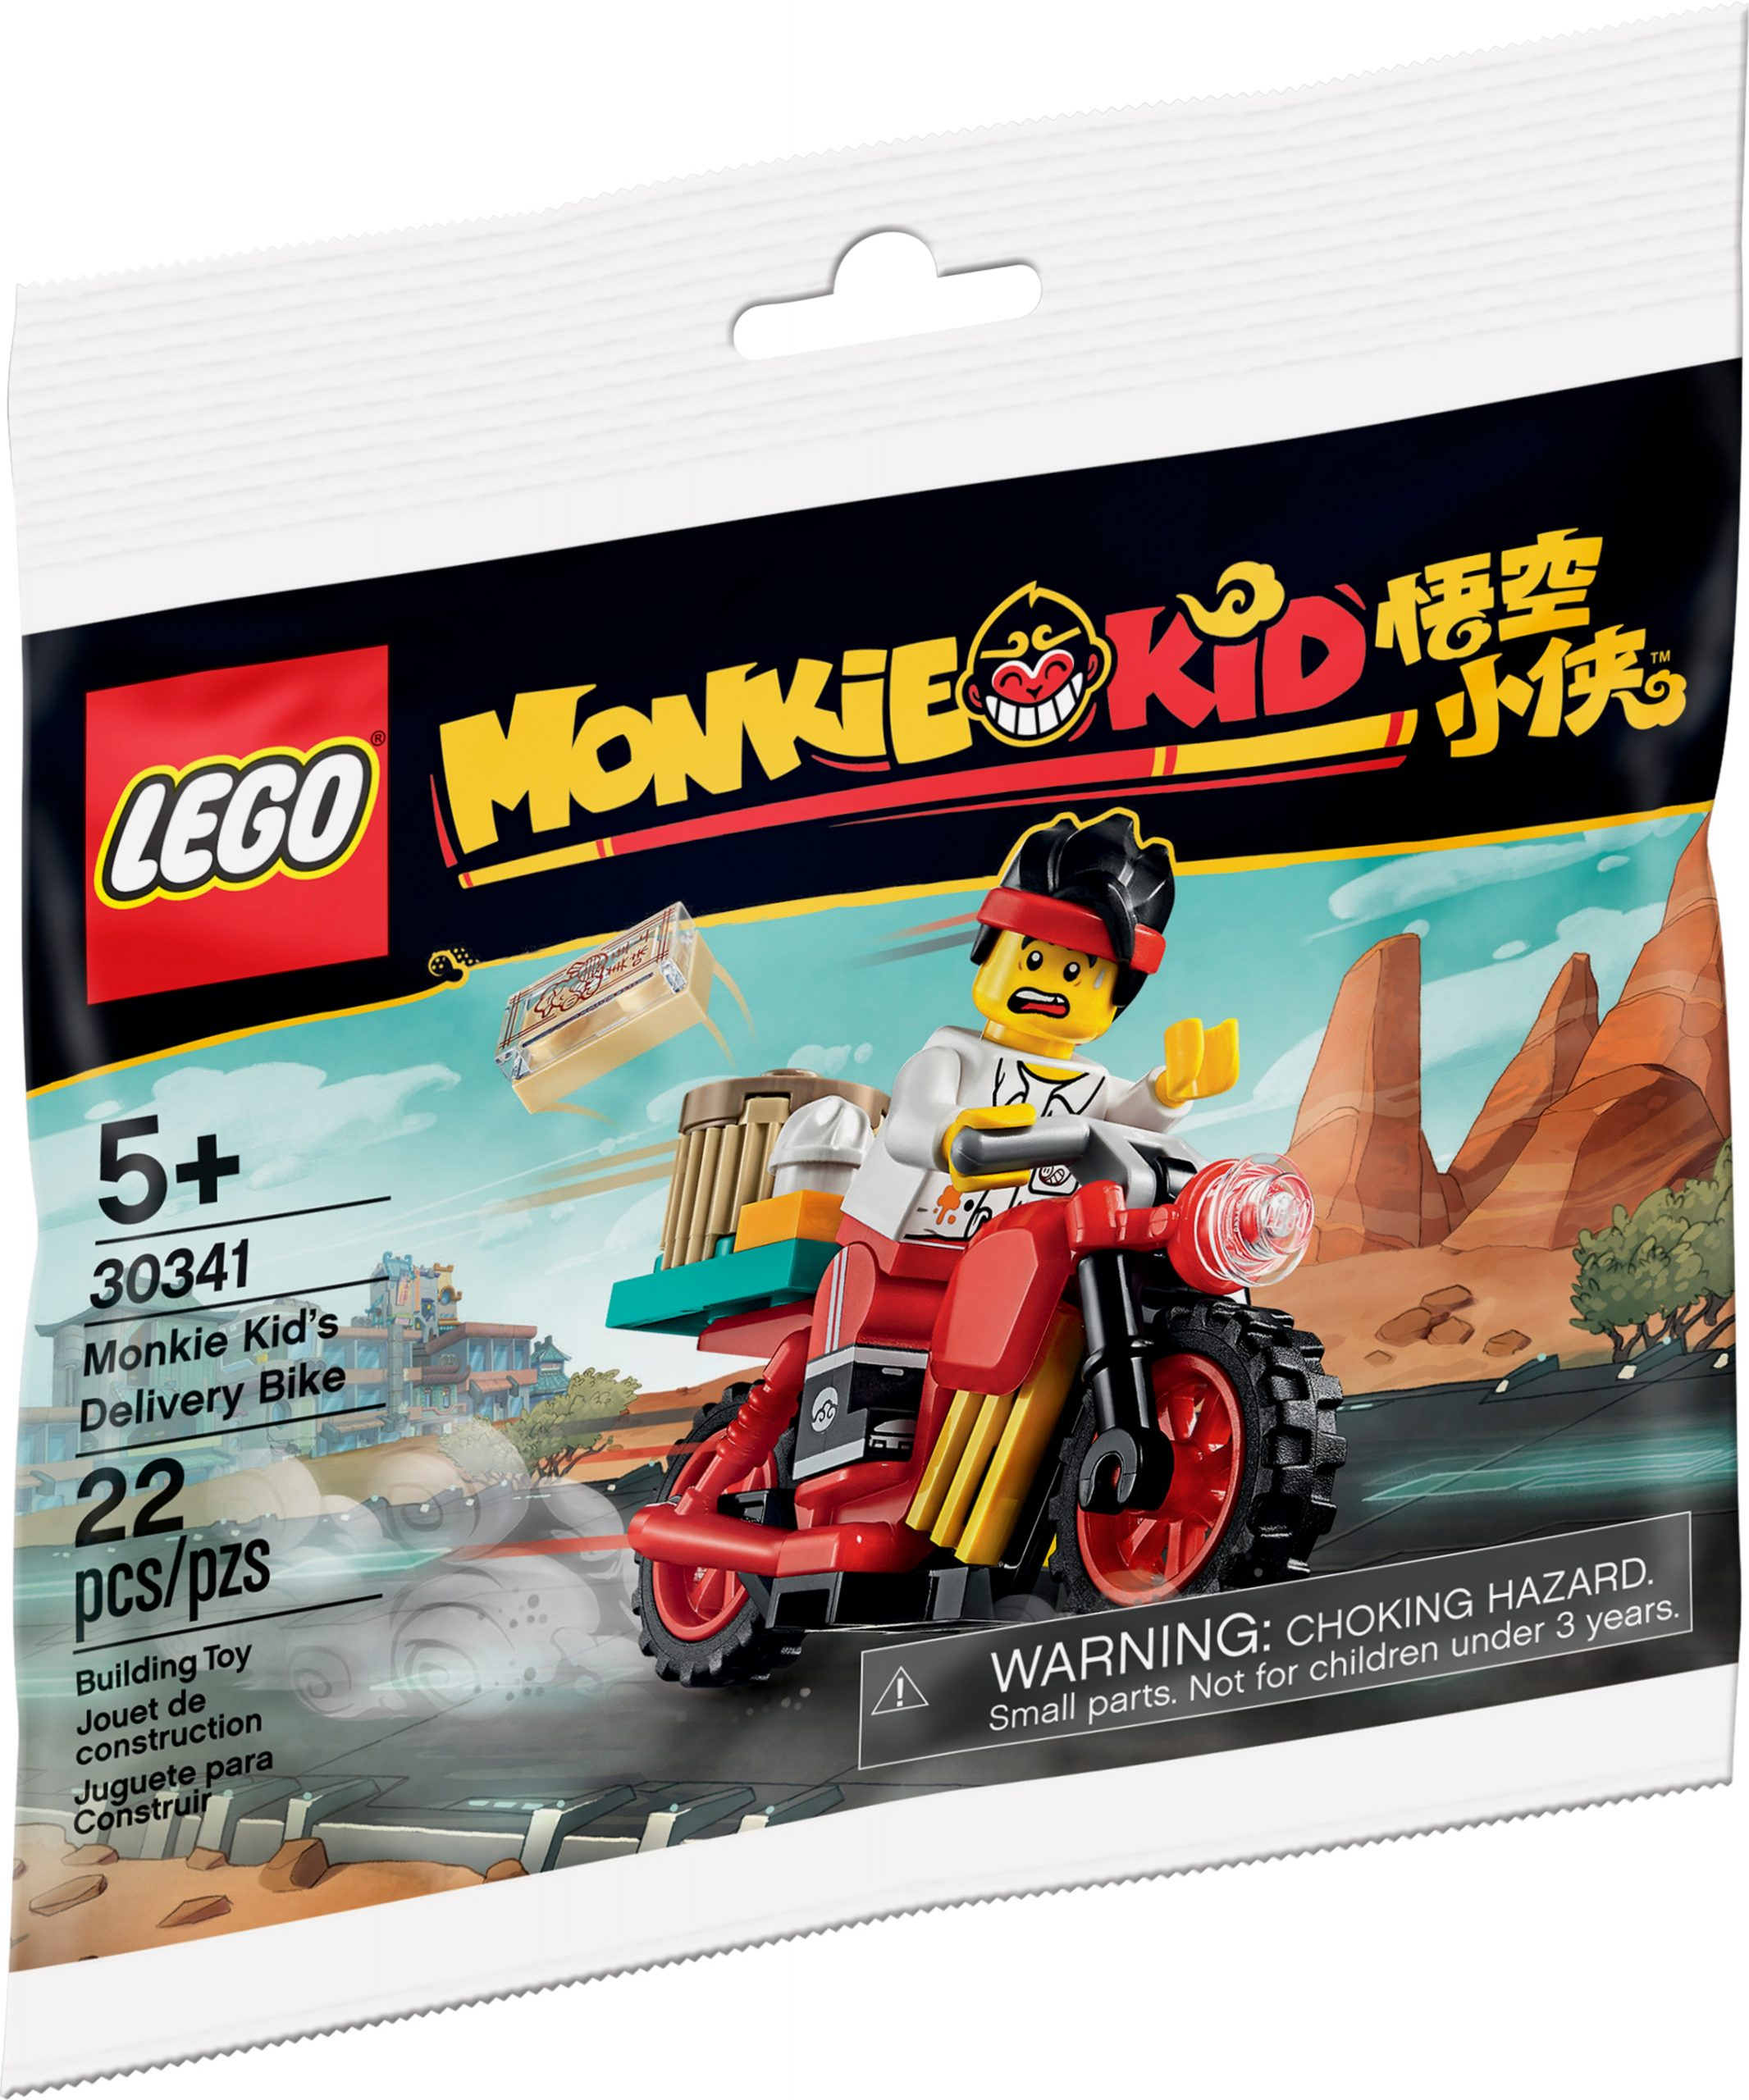 lego 30341 scooter per le consegne di monkie kid scaled